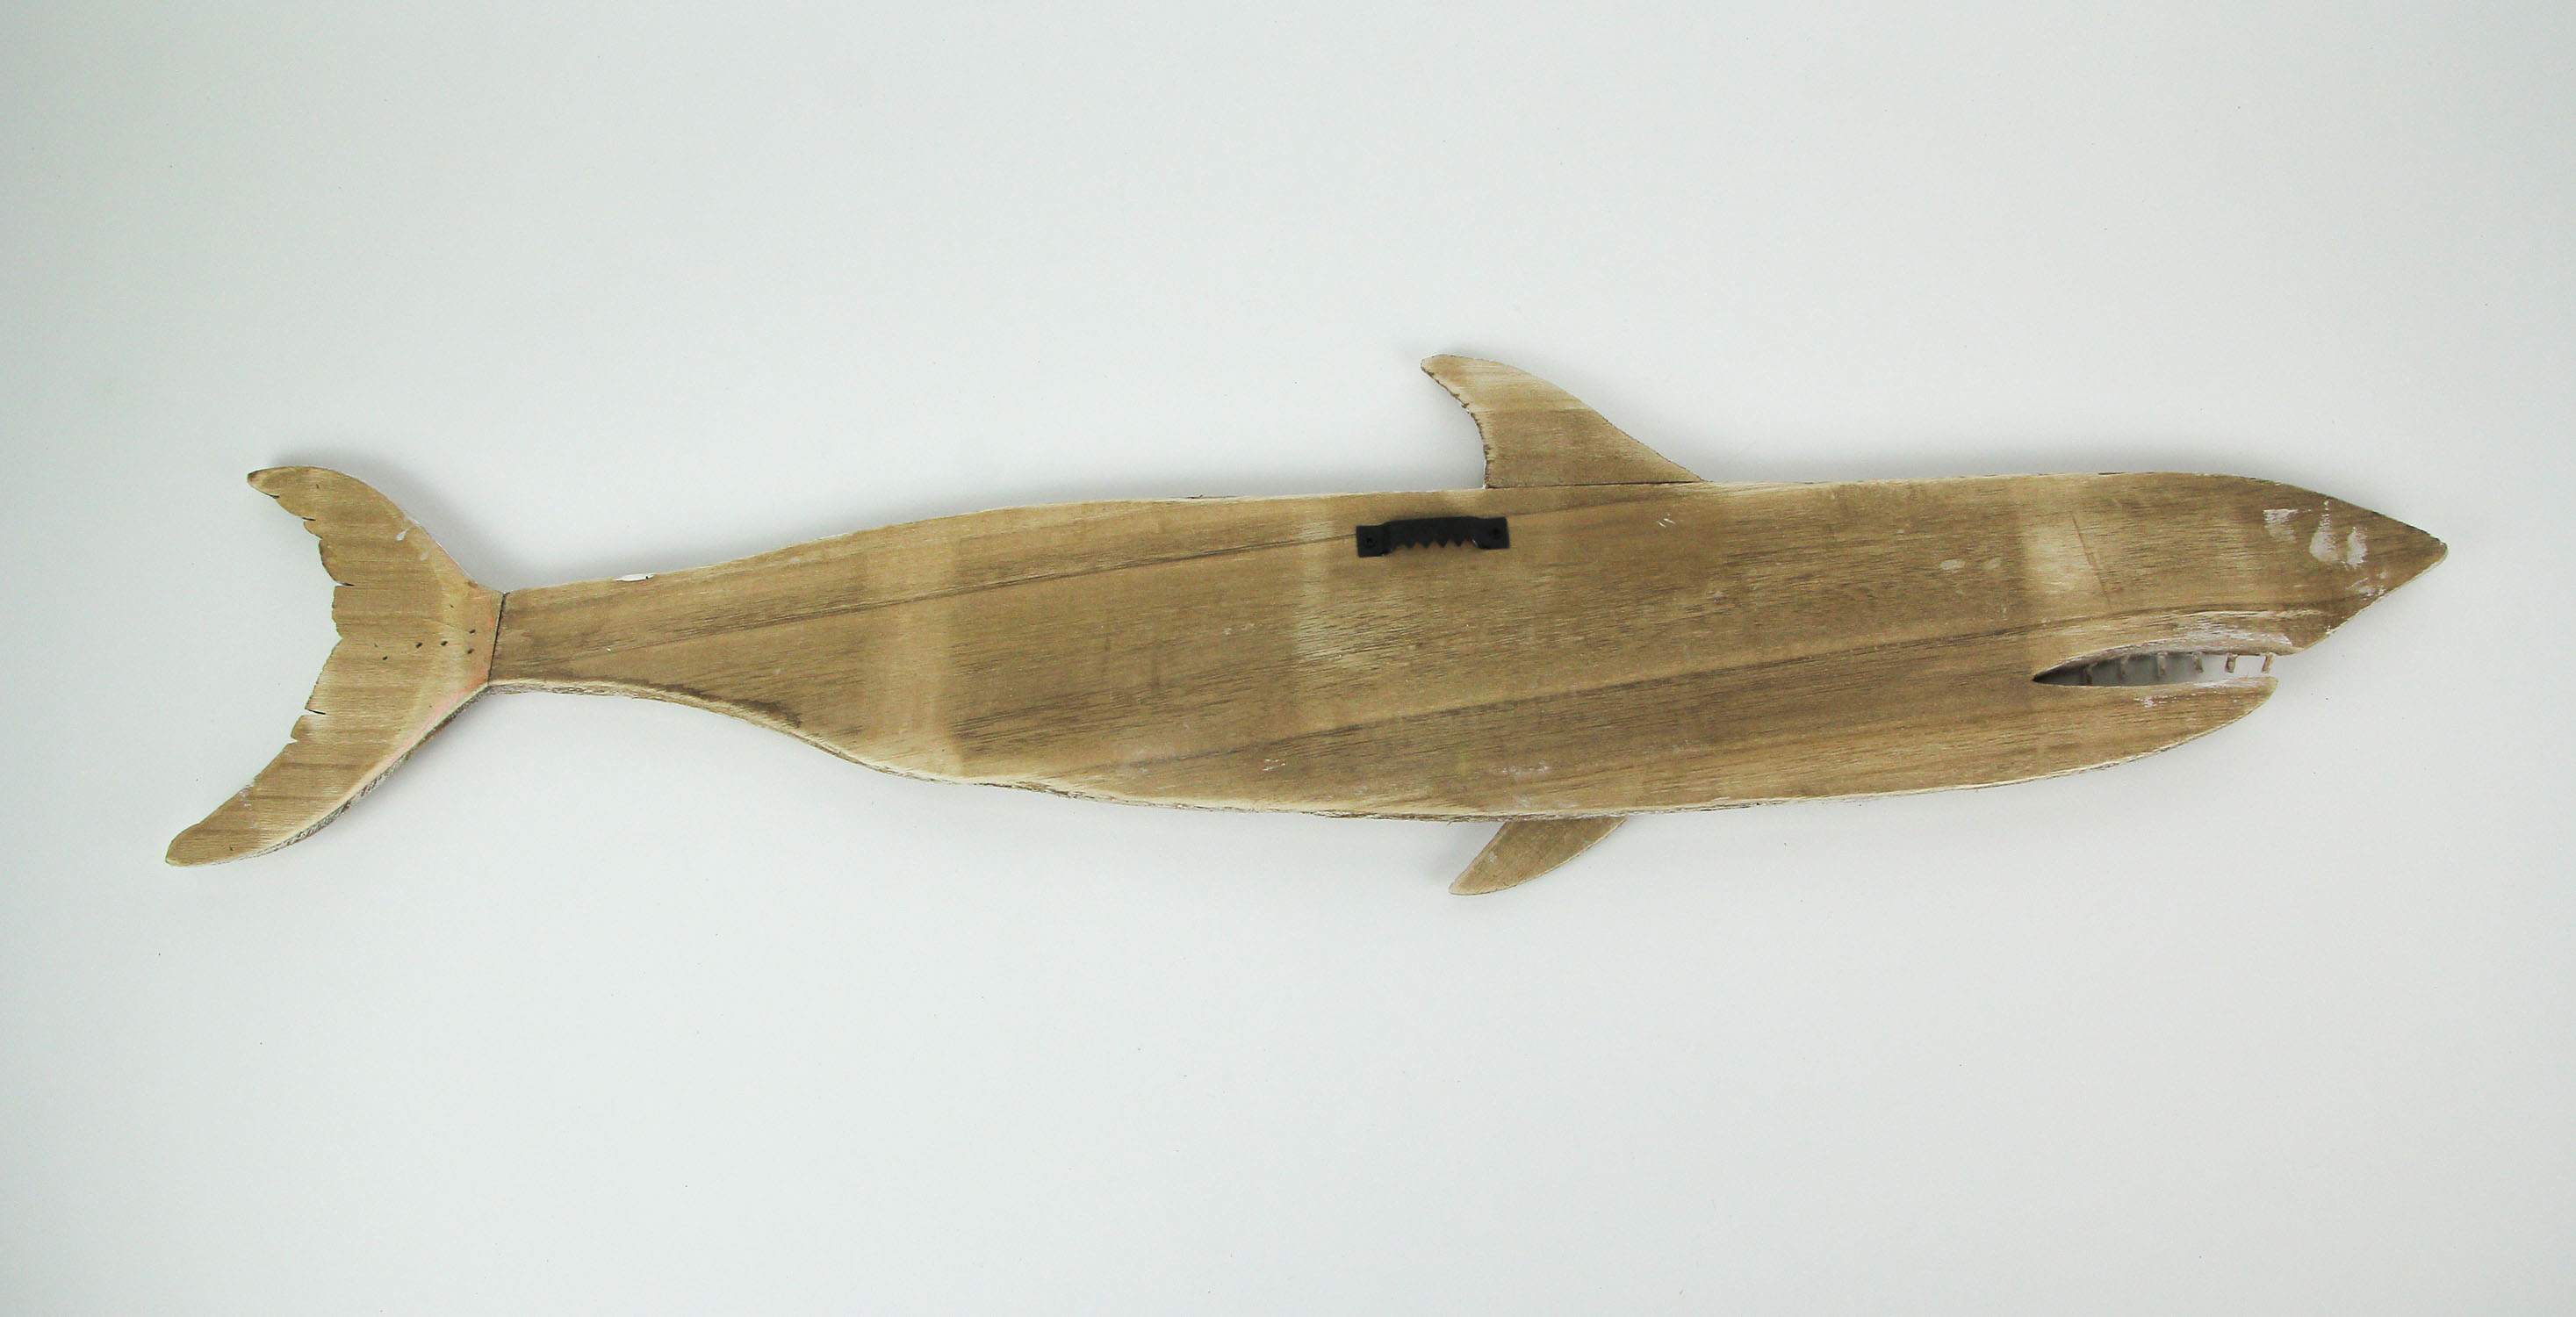 thumbnail 7 - Carved Recycled Wood Great White Shark Wall Sculpture 36 Inches Long